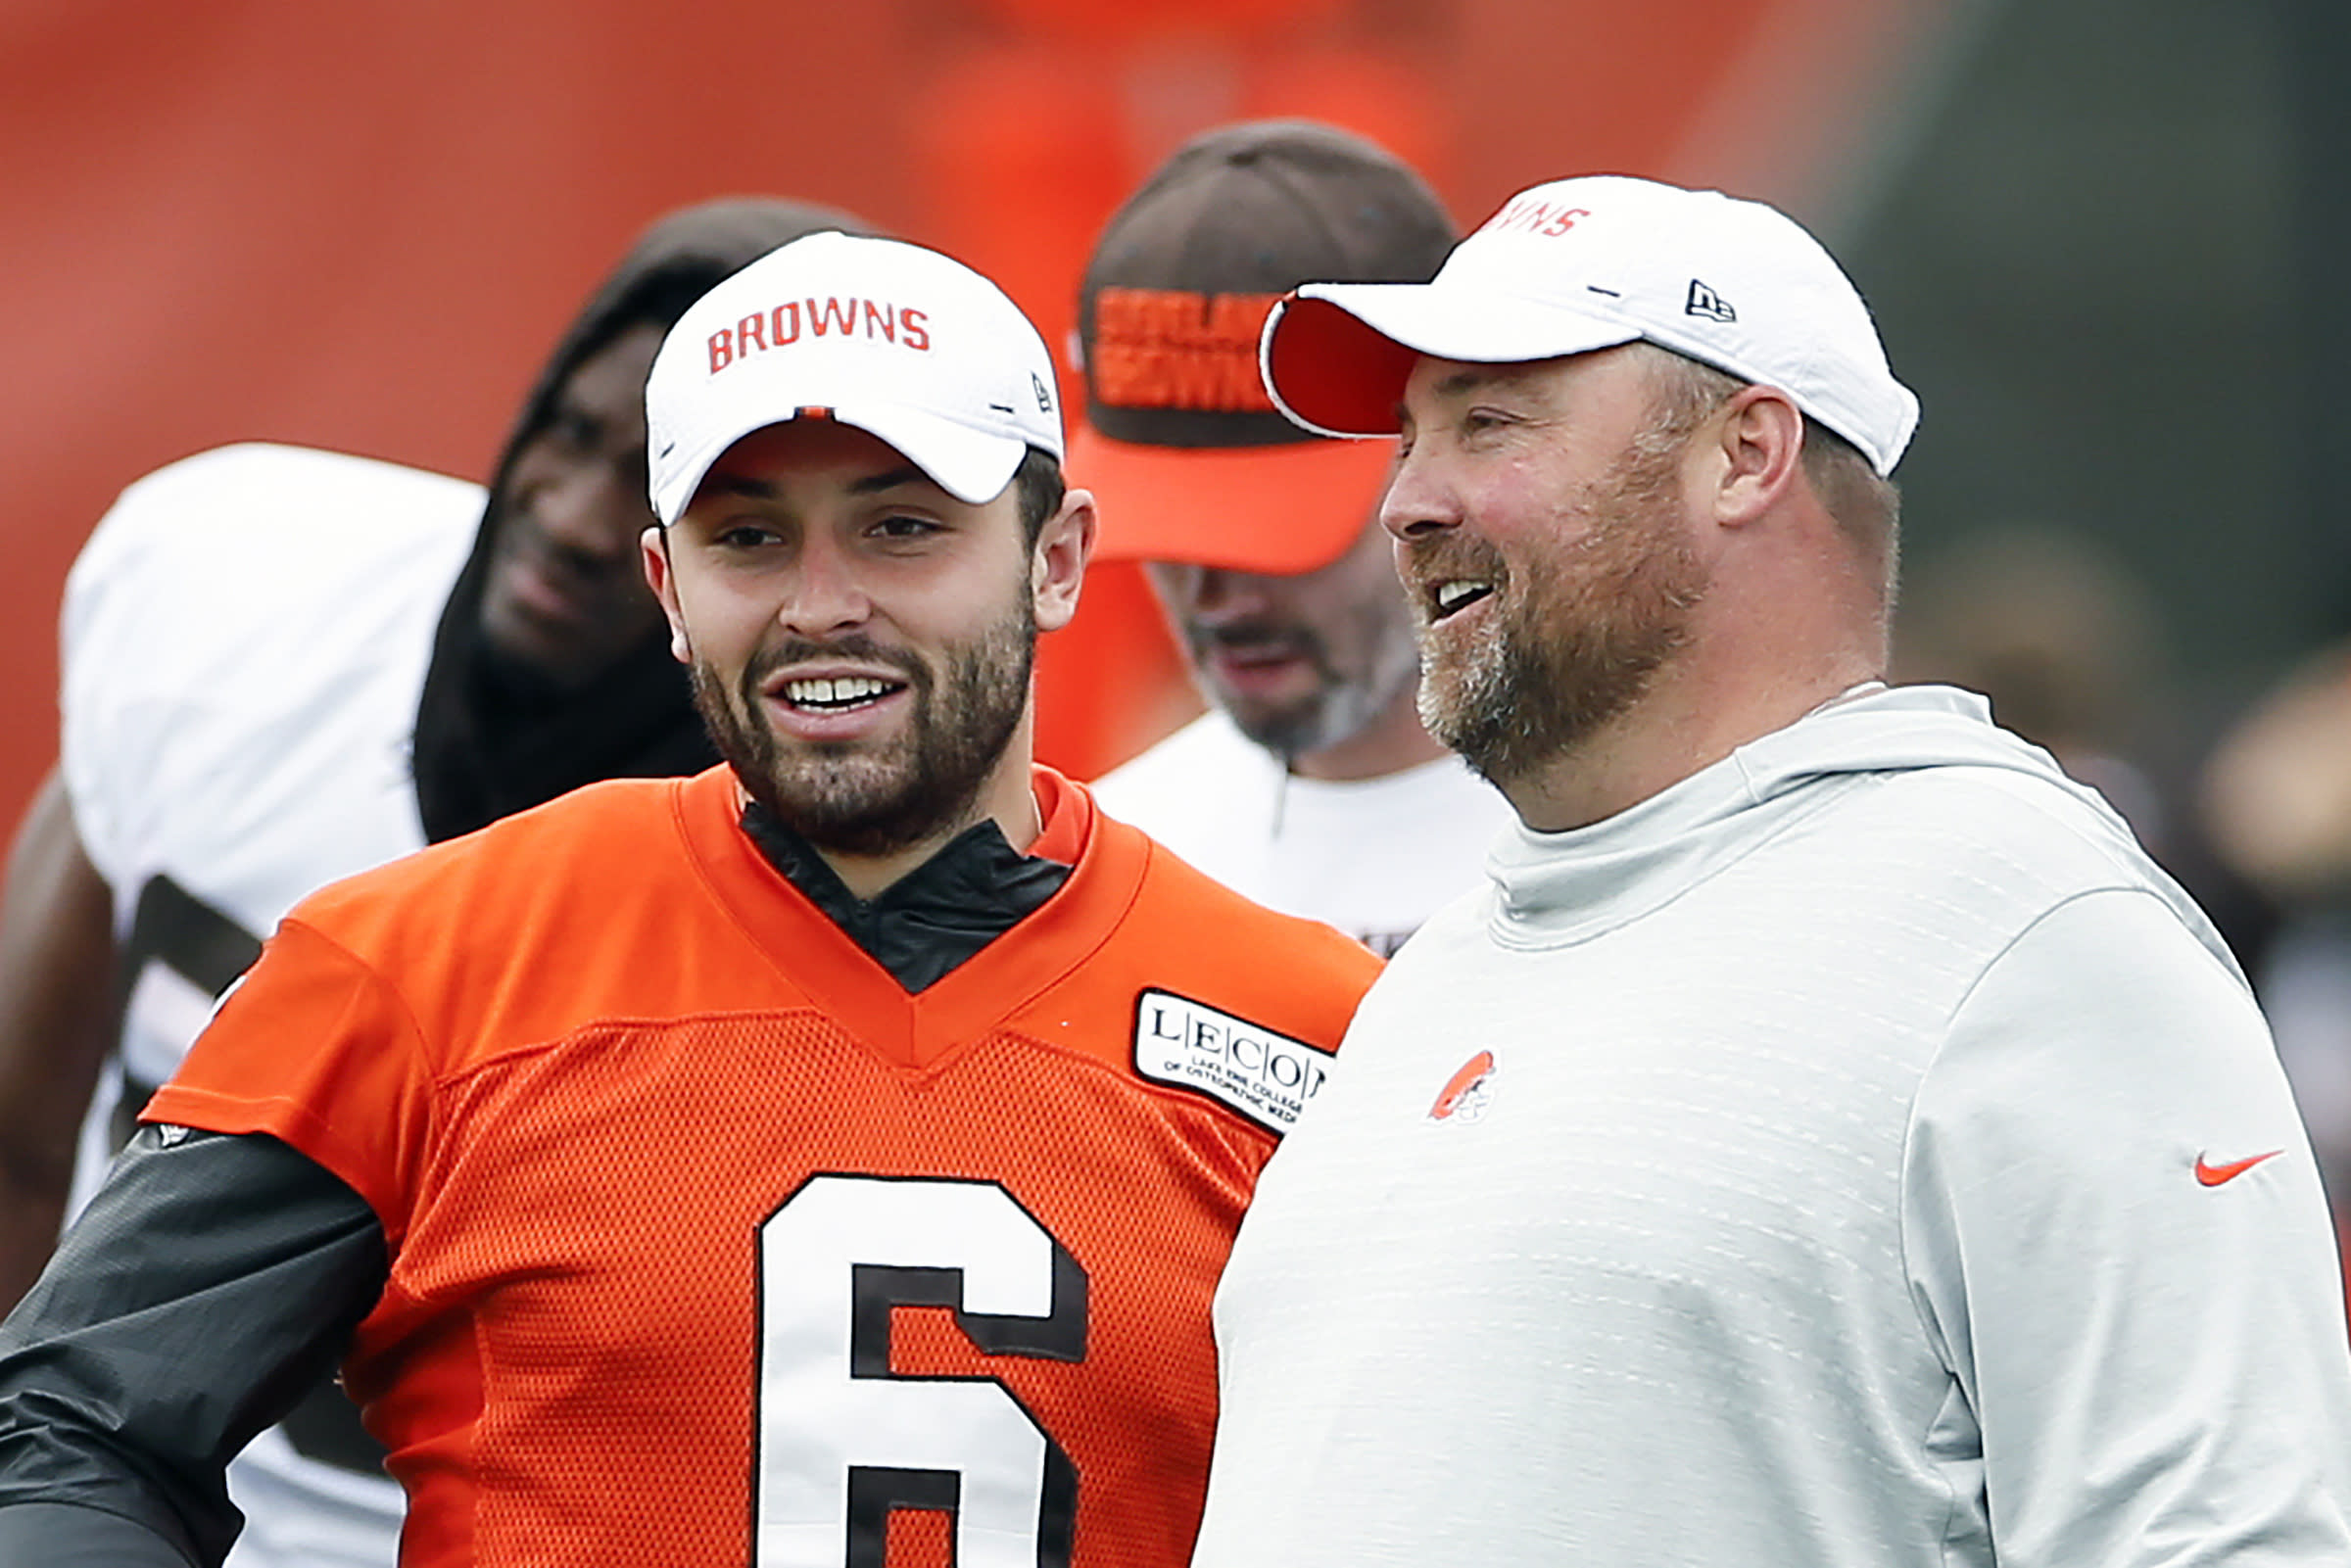 FILE - In this June 4, 2019, file photo, Cleveland Browns quarterback Baker Mayfield (6) talks with head coach Freddie Kitchens at the team's NFL football training facility in Berea, Ohio. Browns coach Freddie Kitchens says he doesnt care if controversial comments by brash quarterback Baker Mayfield put a target on his team. (AP Photo/Ron Schwane, File)